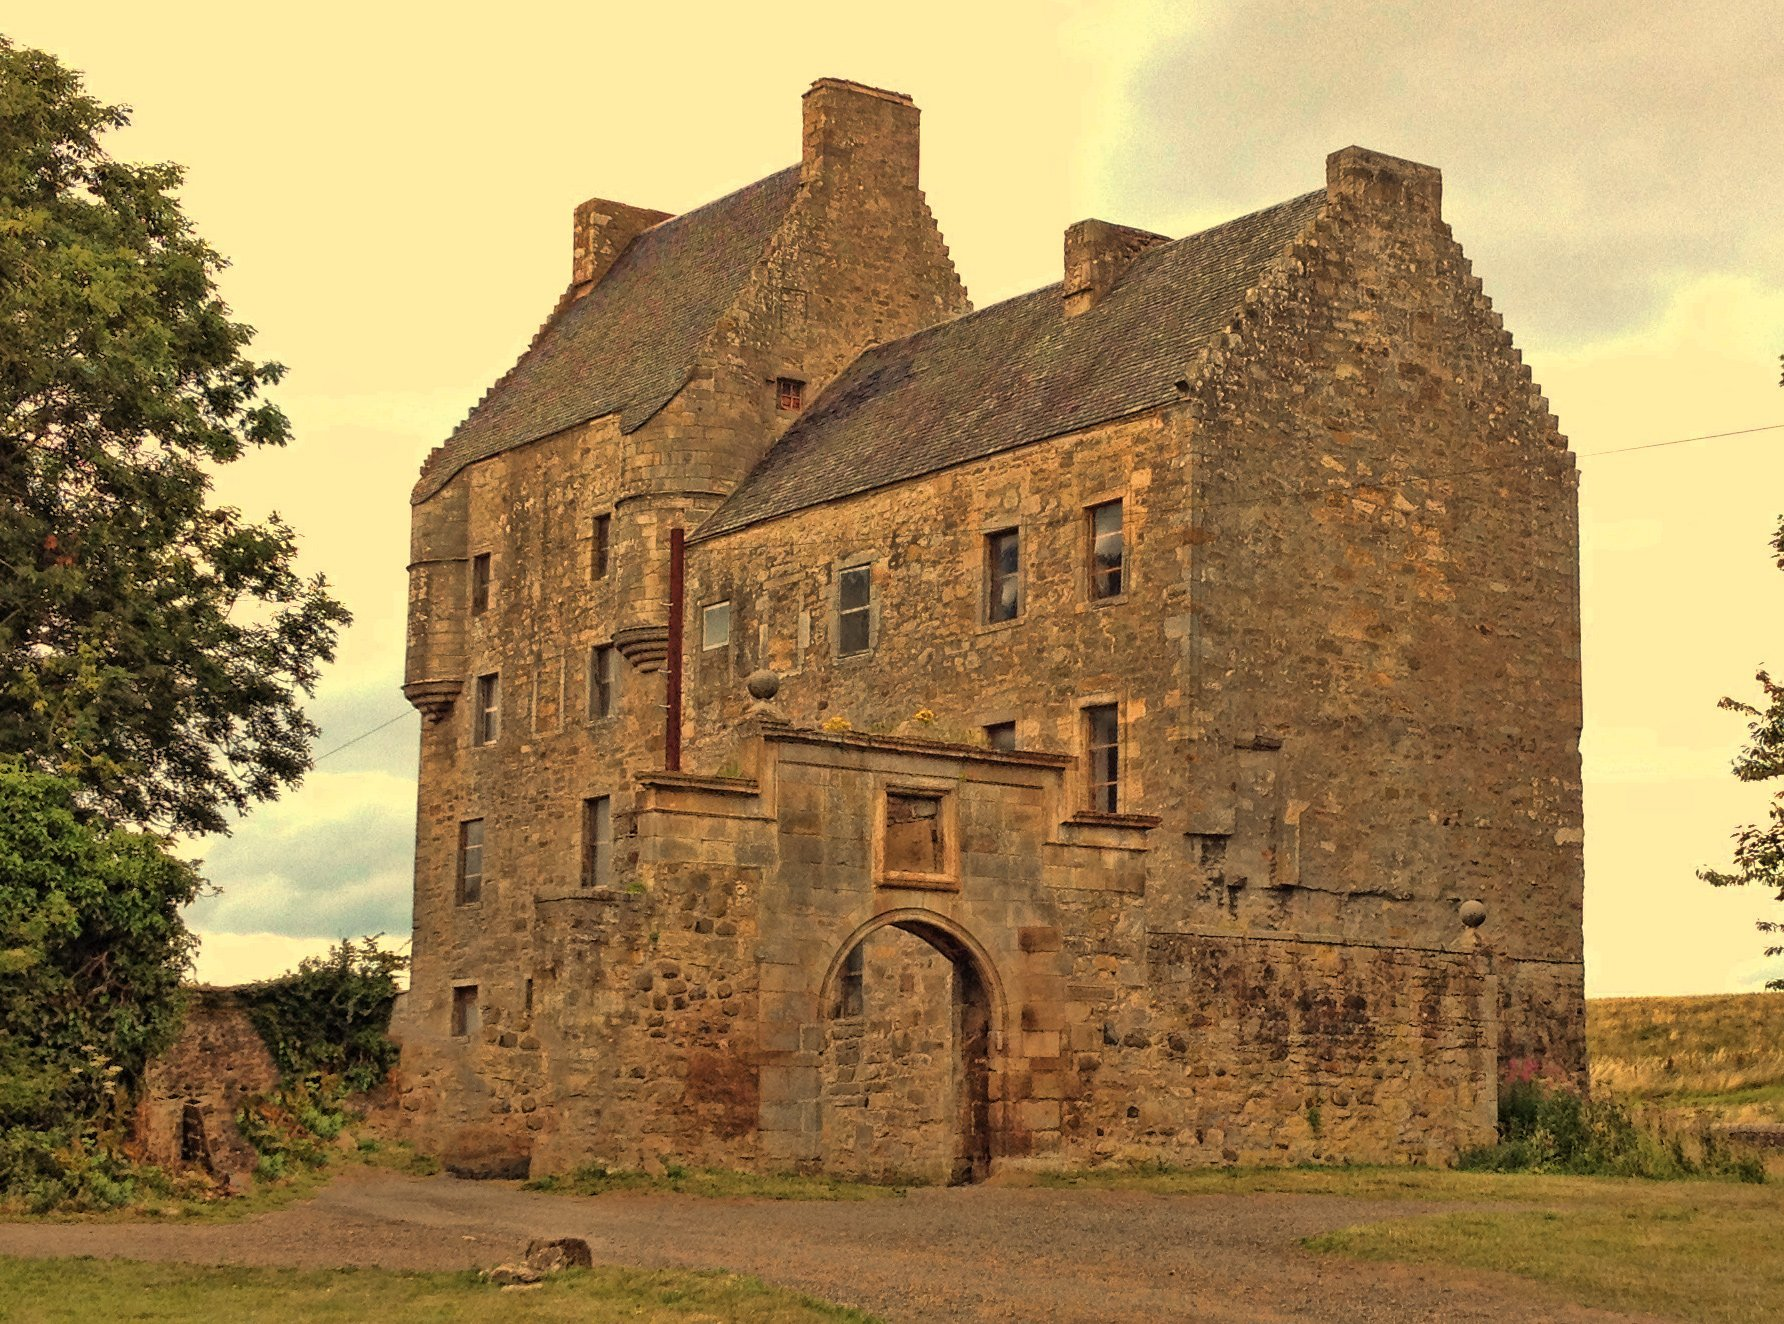 Outlander tour of five Scottish castles including Lallybroch